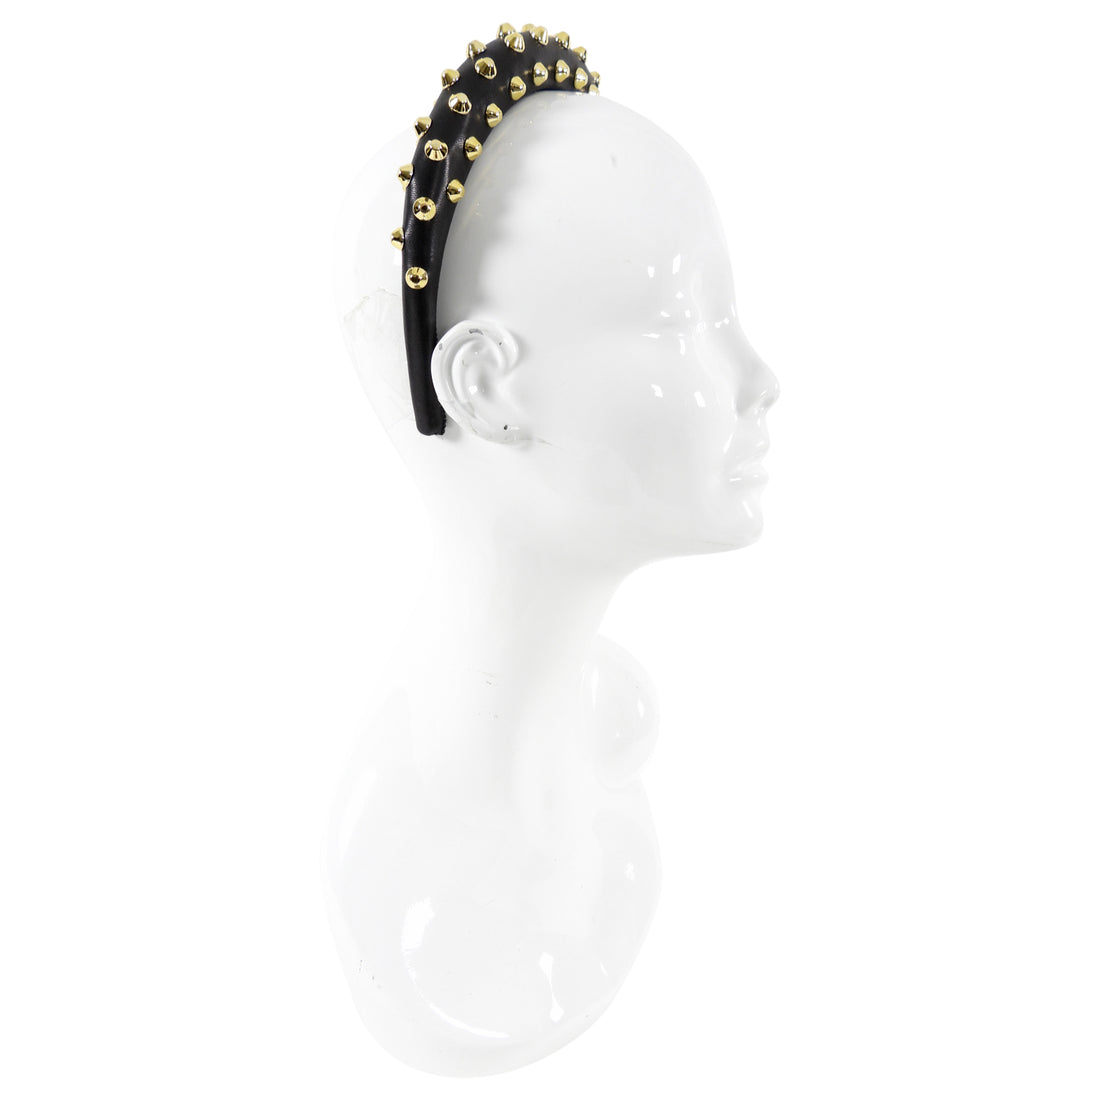 Prada Black Nappa Gold Stud Leather Headband